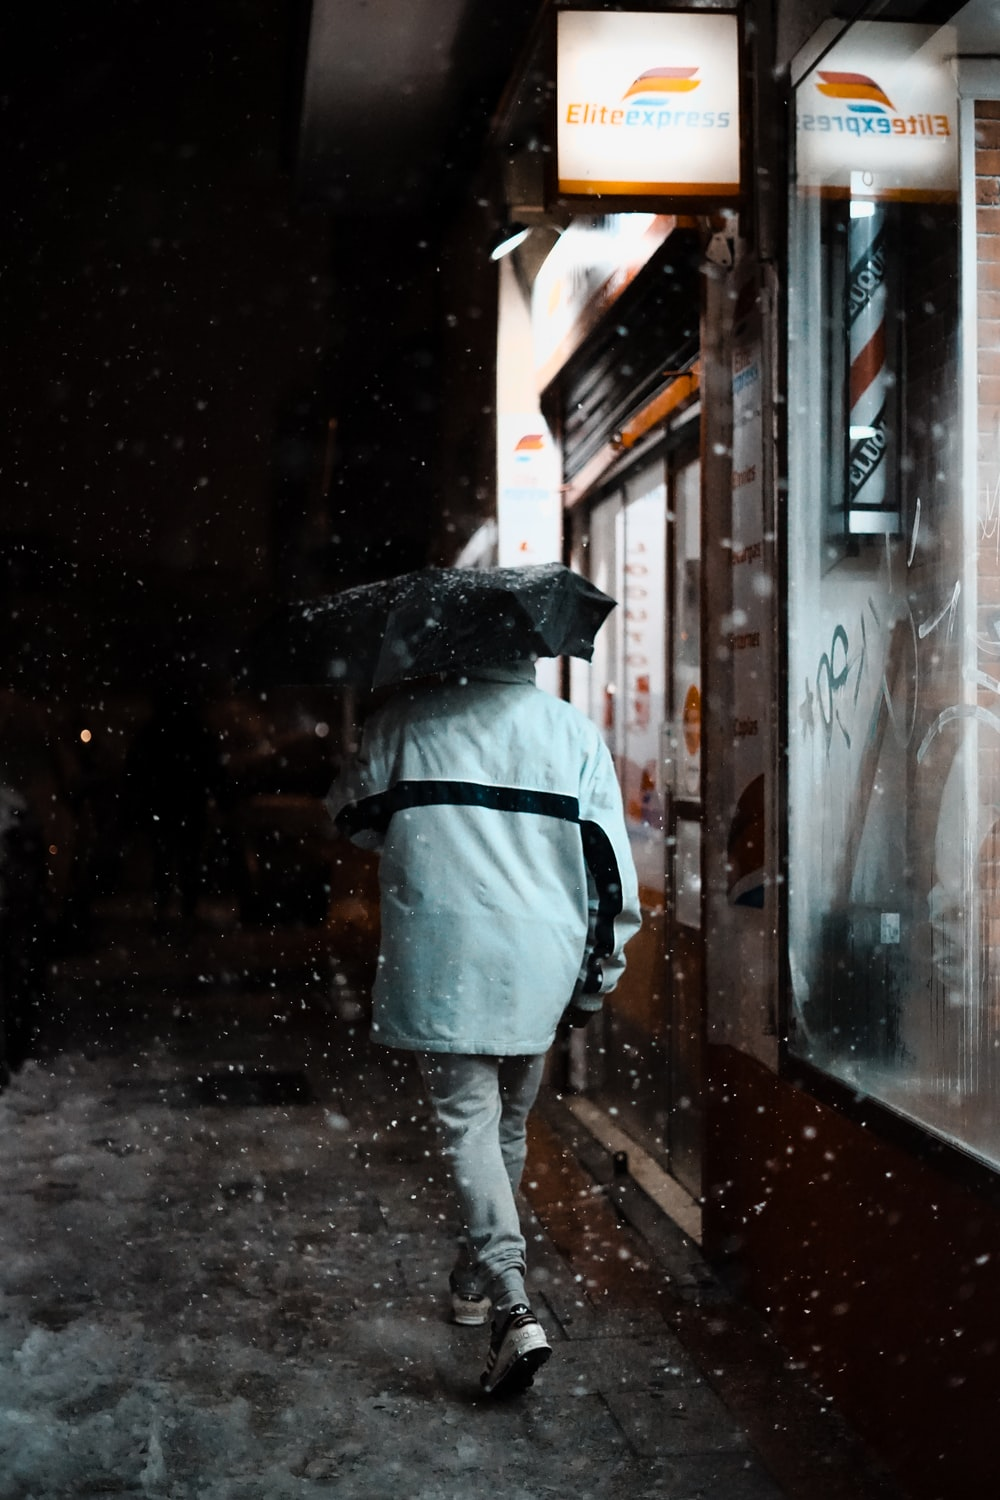 person in white shirt and gray pants with black umbrella standing on sidewalk during night time